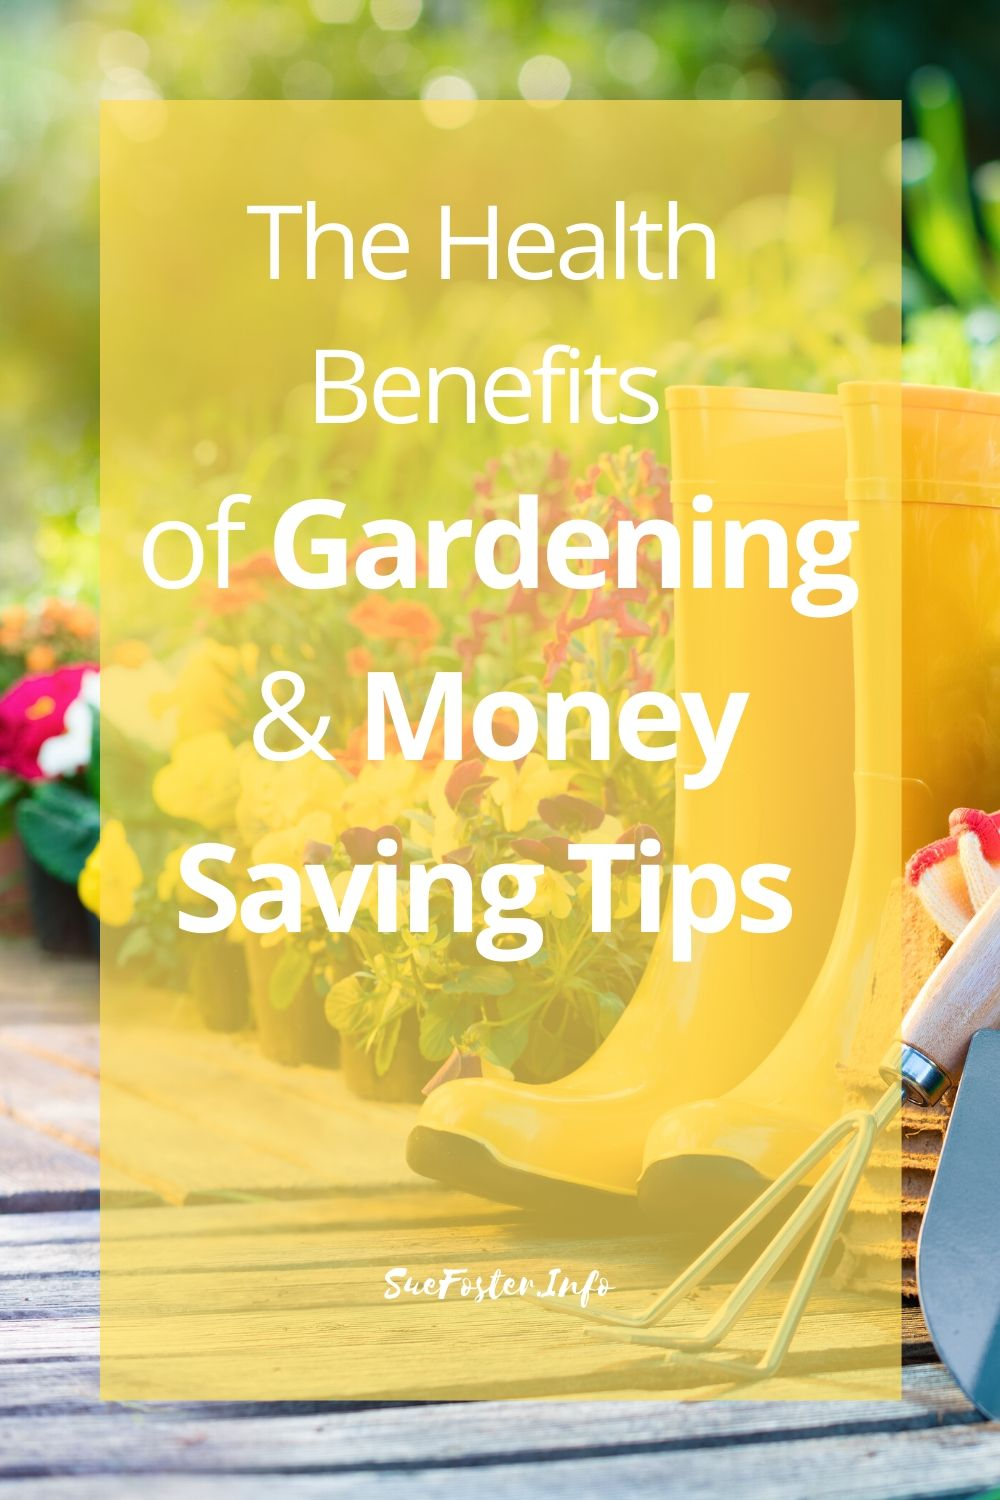 Having a garden whether it be outdoors or indoors can provide a place of sanctuary and well-being and help take your mind off things. With money being in short supply for many people, here are some tips to help you save you money when creating your little space of heaven.